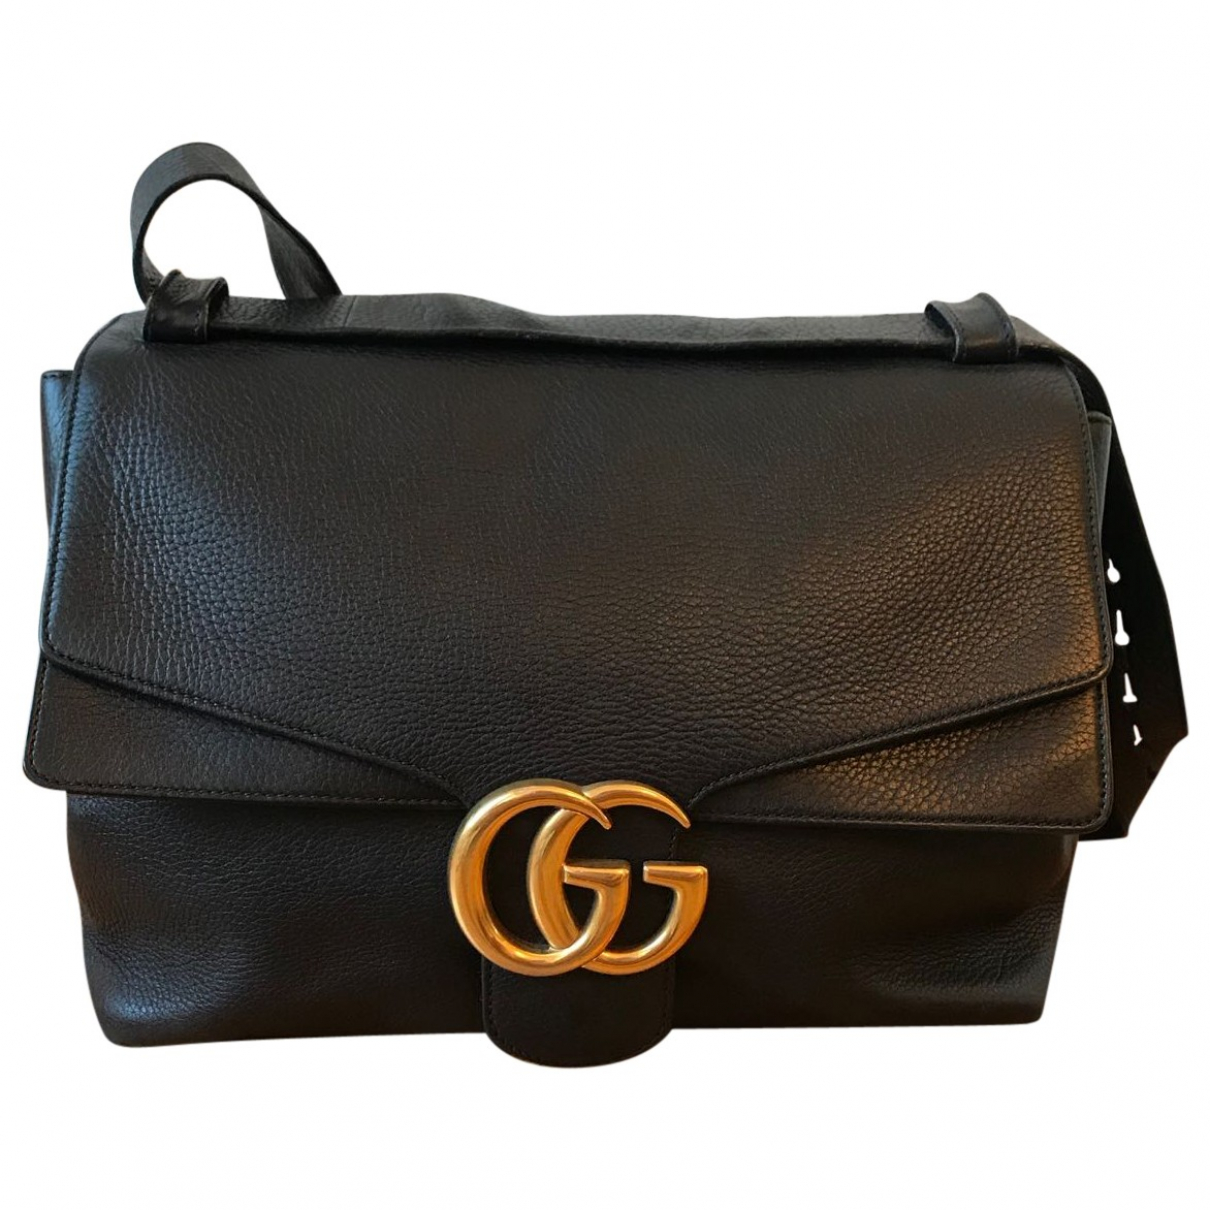 Gucci Marmont Black Leather handbag for Women \N